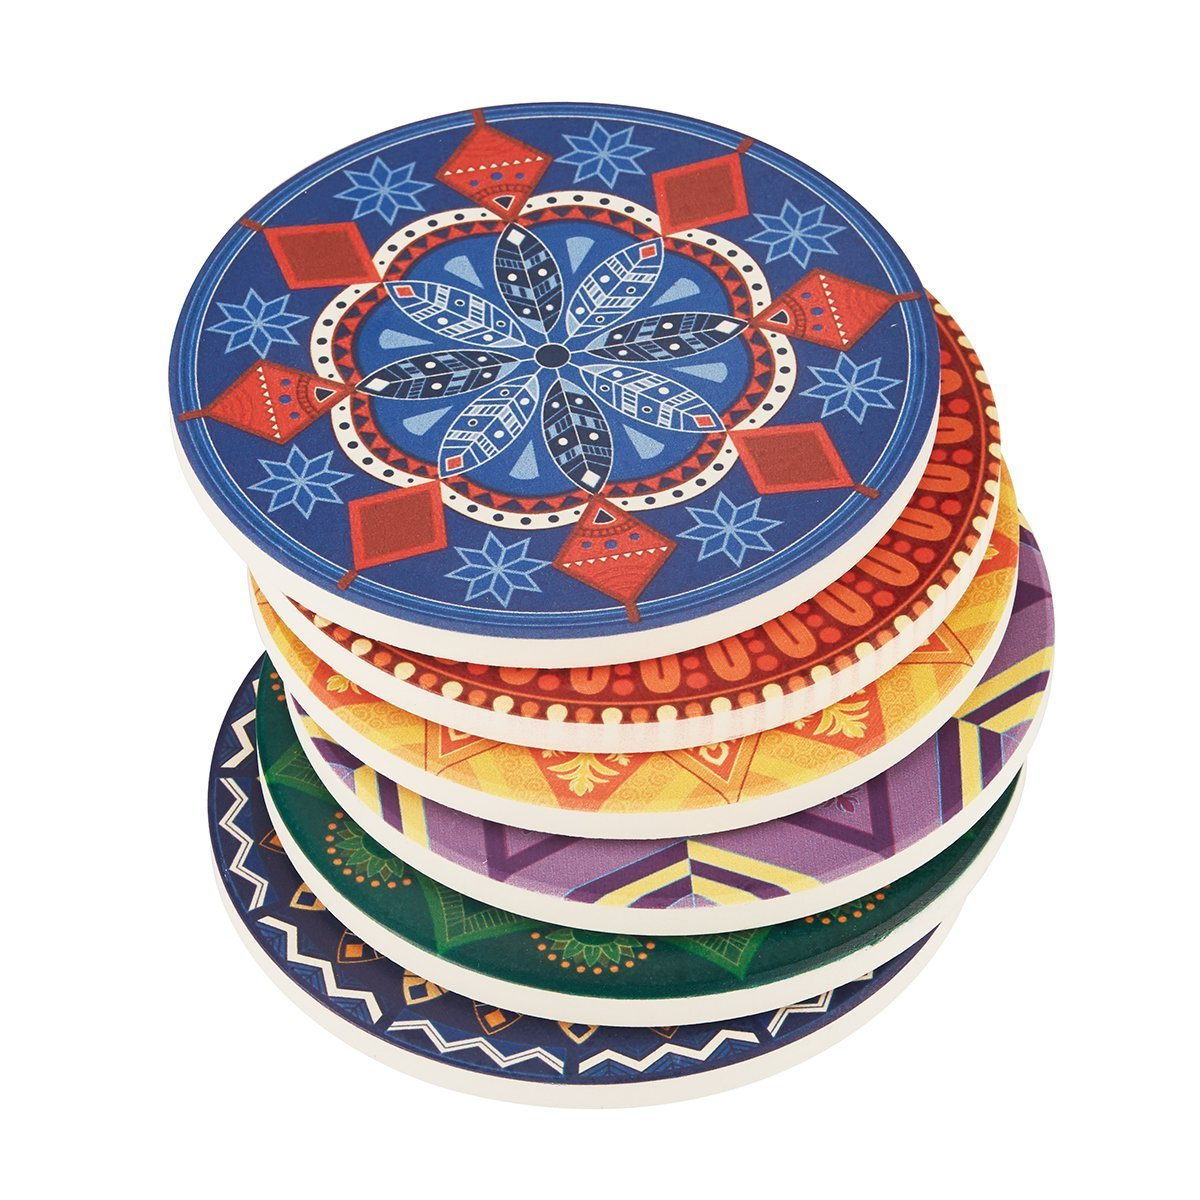 Lifver 6-Piece Absorbent Stone Coaster set,''drink'' spills coasters,Mandala Style and Dream Catcher Design